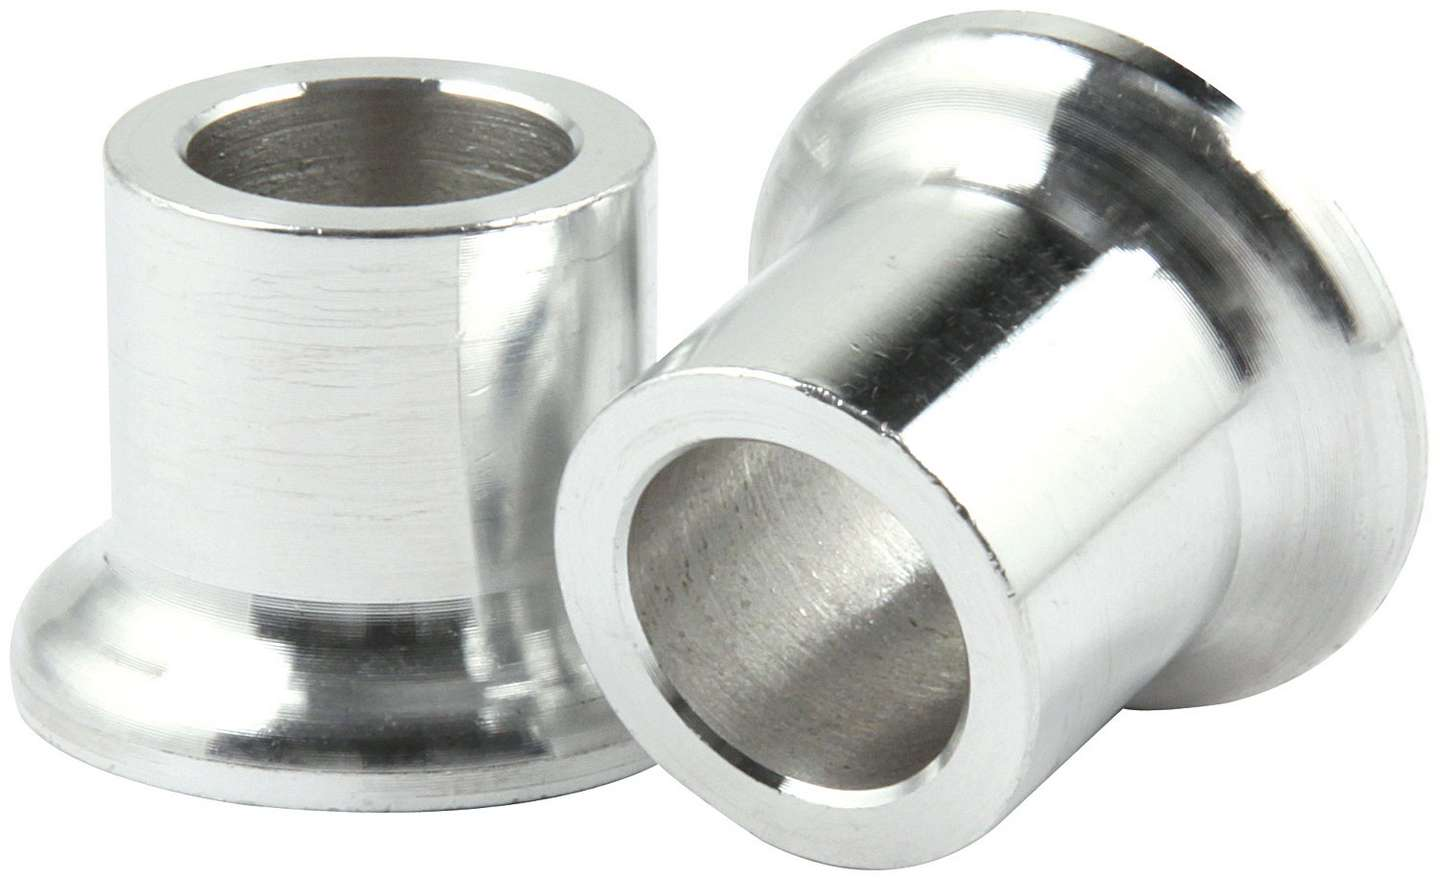 Allstar Tapered Spacers, Aluminum 1/2 I.D., 3/4 Long